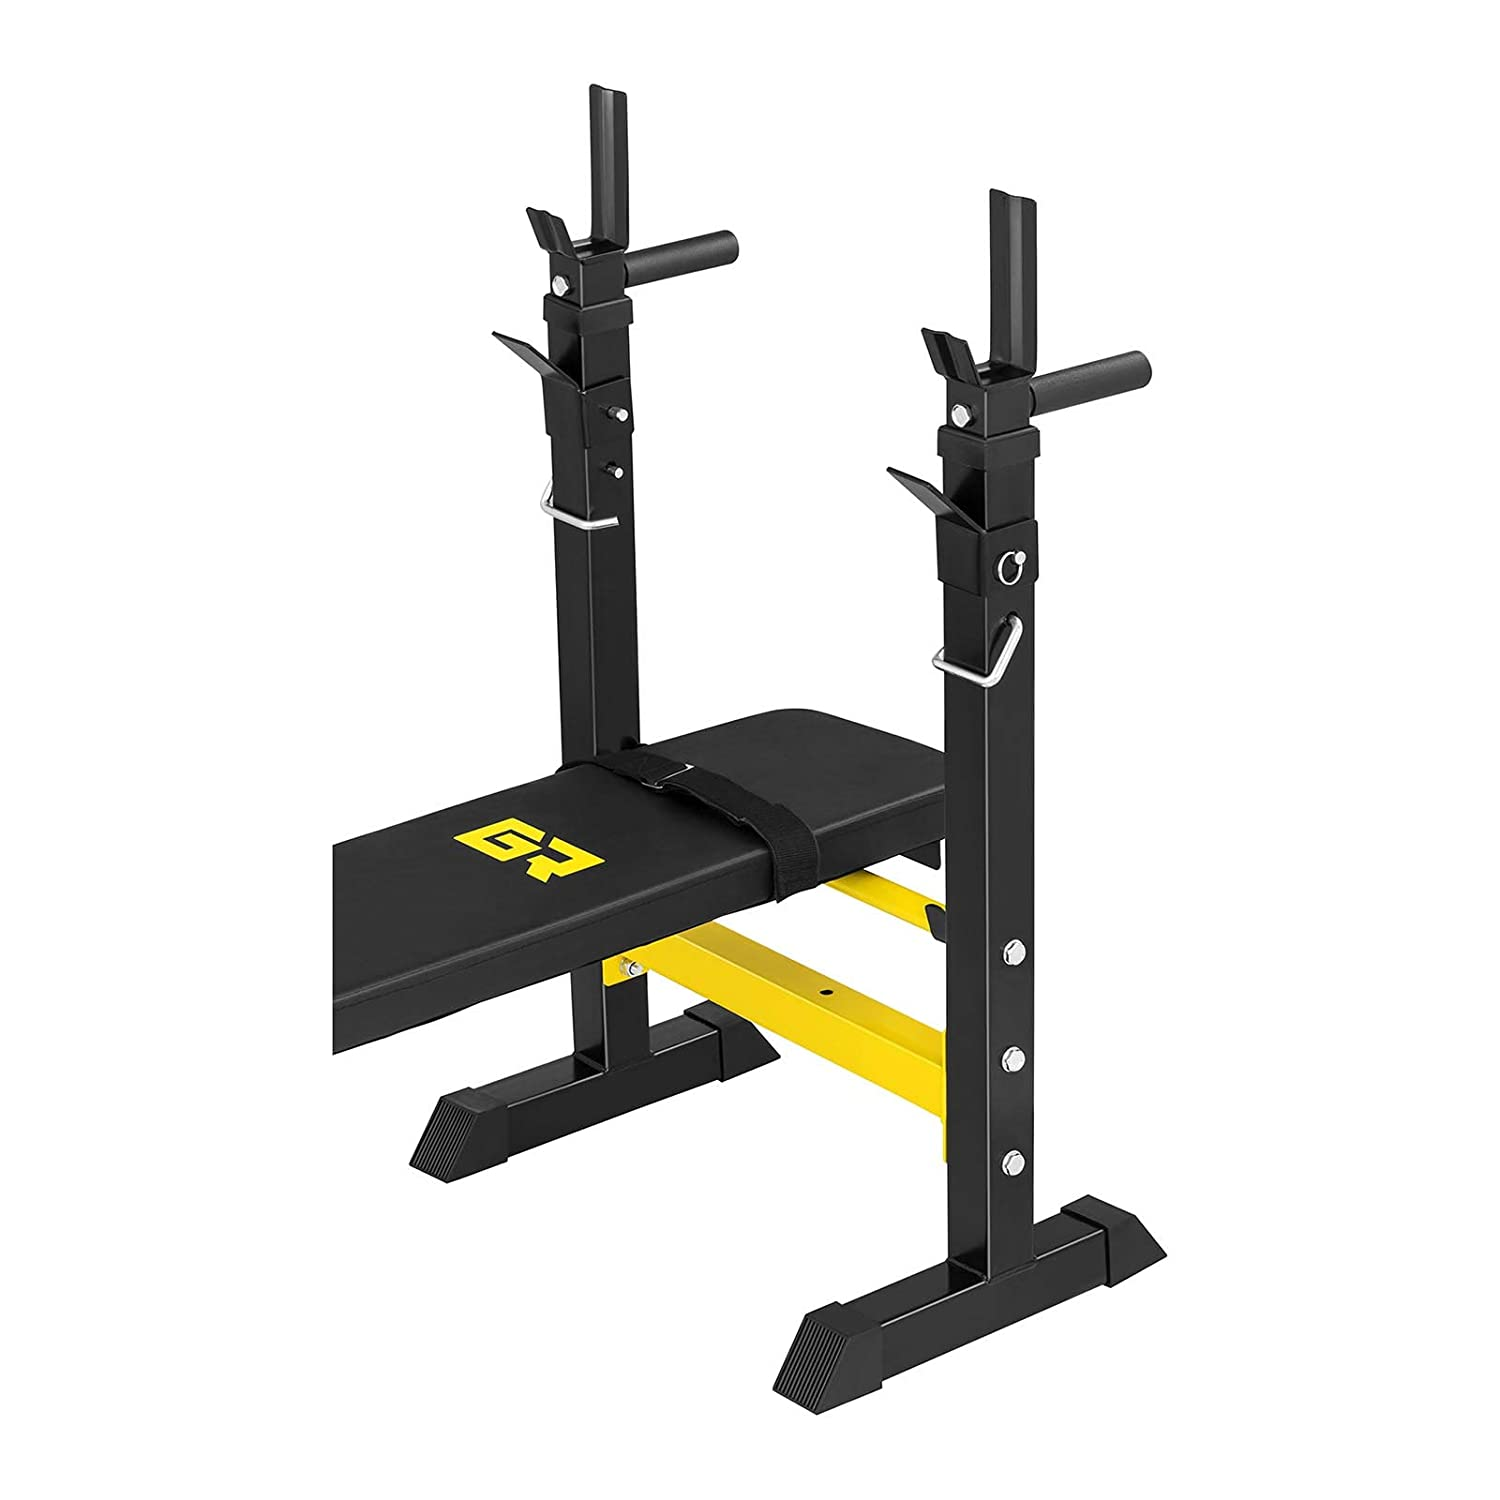 Max. user weight: 110 kg, Max. barbell rack load: 110 kg, Foldable, Optimum padding Gymrex Bench Press Bench With Barbell Rack Dip Station GR-WB5